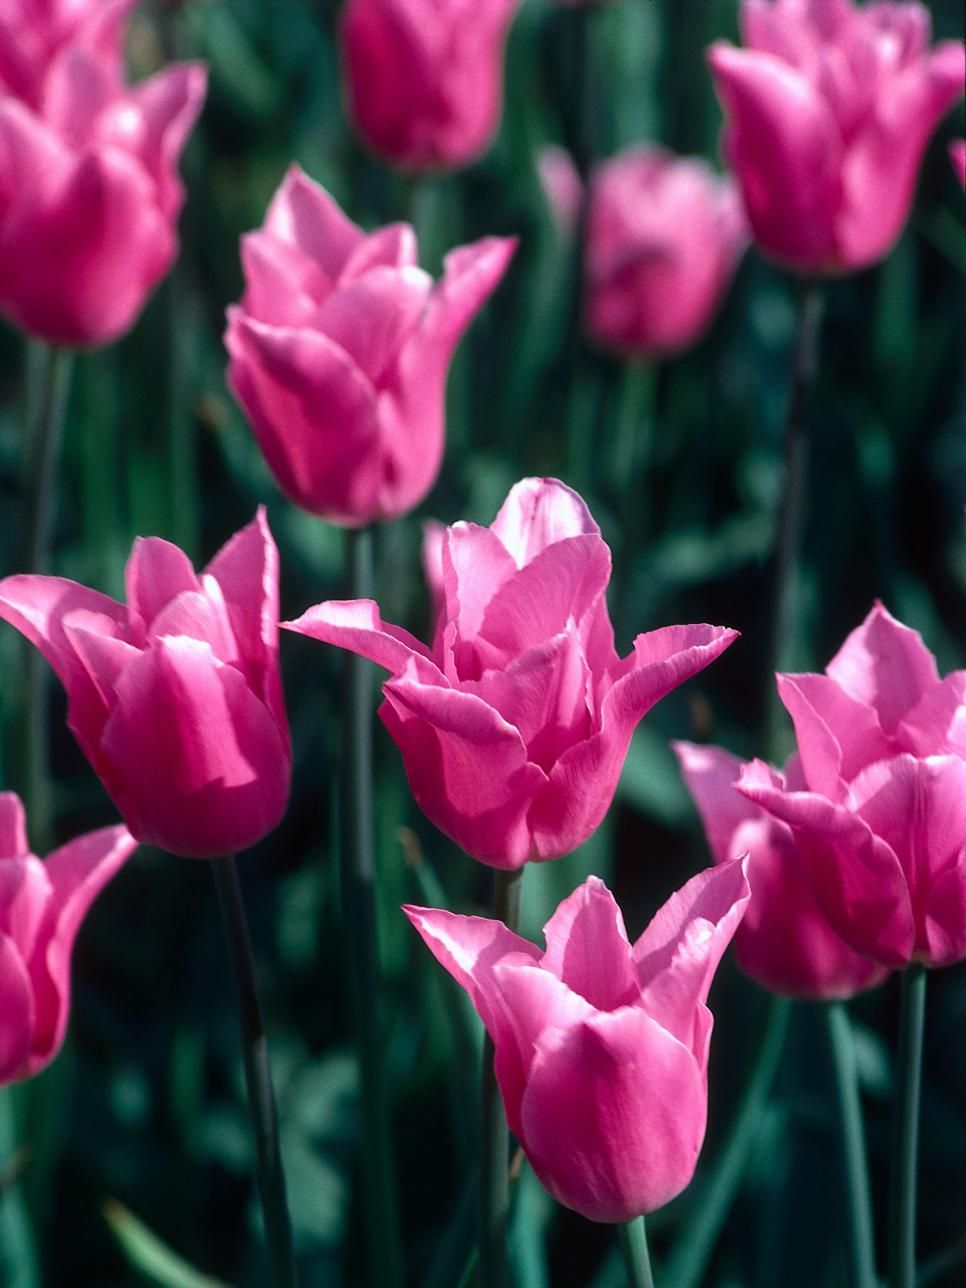 China Pink Tulip Produces Lily Like Blooms The China Pink Produces Lily Like Candy Pink Flowers On Tall Graceful Ste Flowers Colorful Garden Pink Flowers